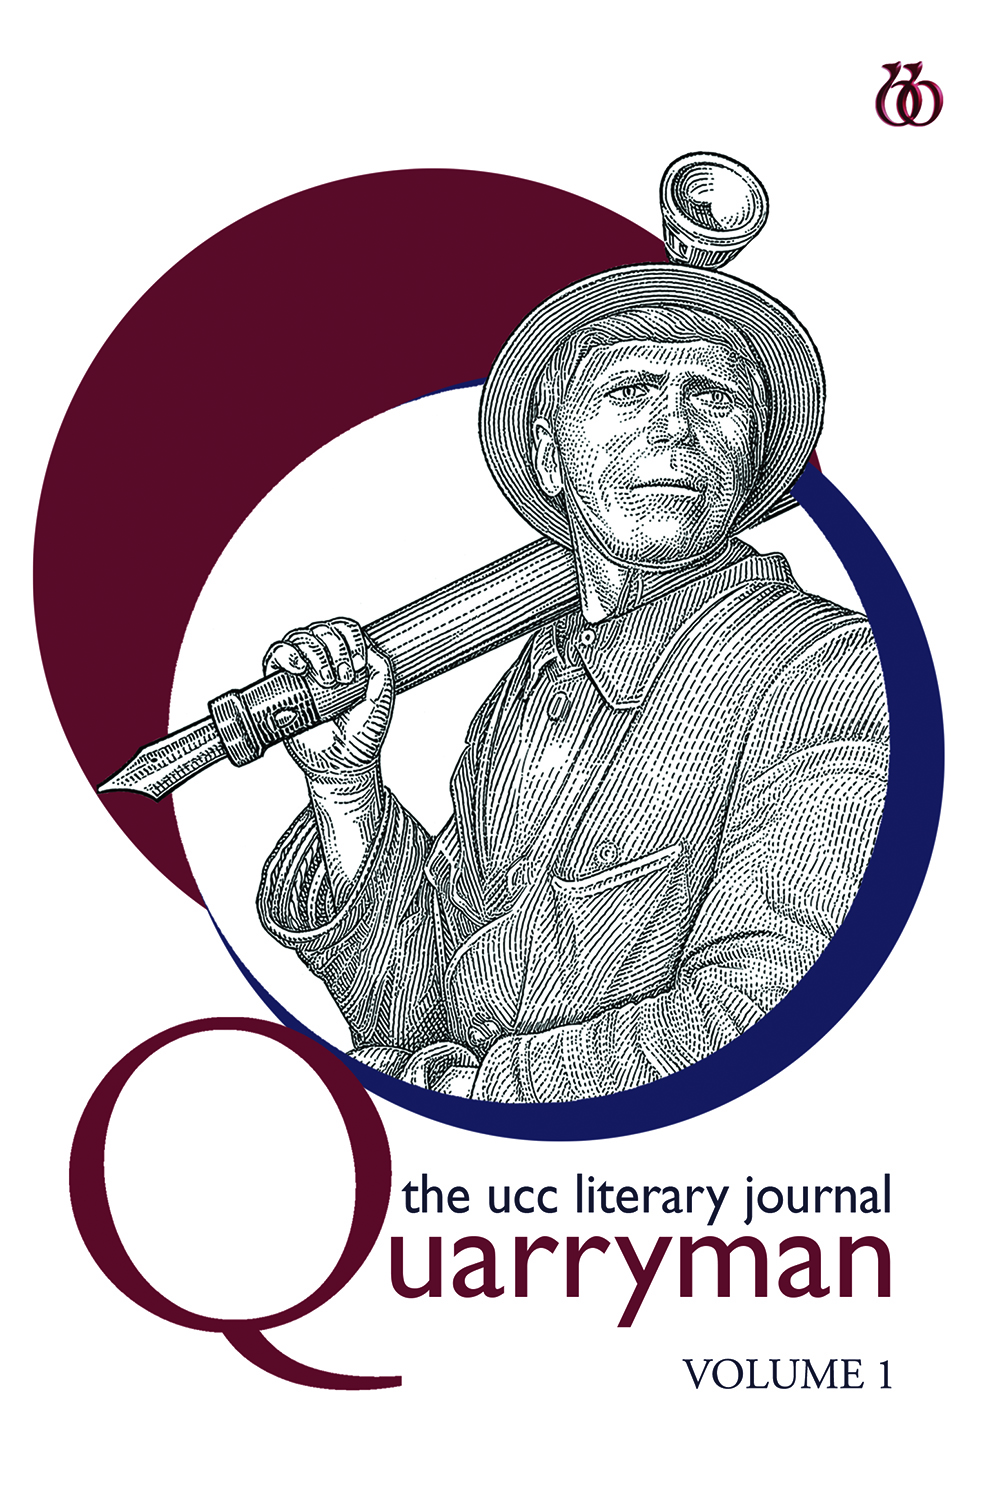 Launch of new-look Quarryman literary magazine